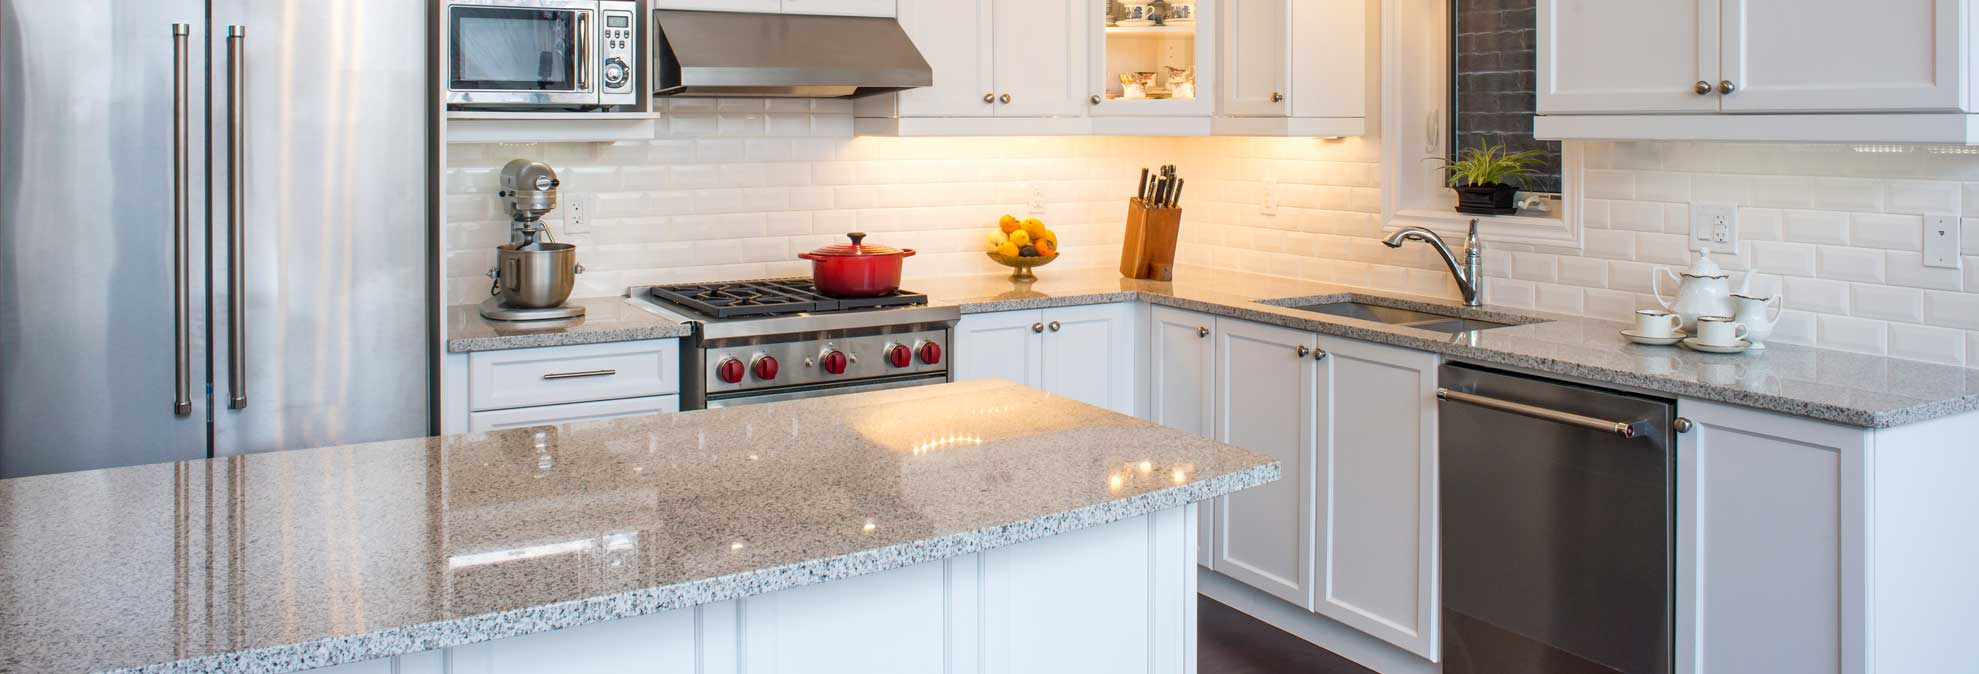 How a modern kitchen renovation increases   the market value of your home